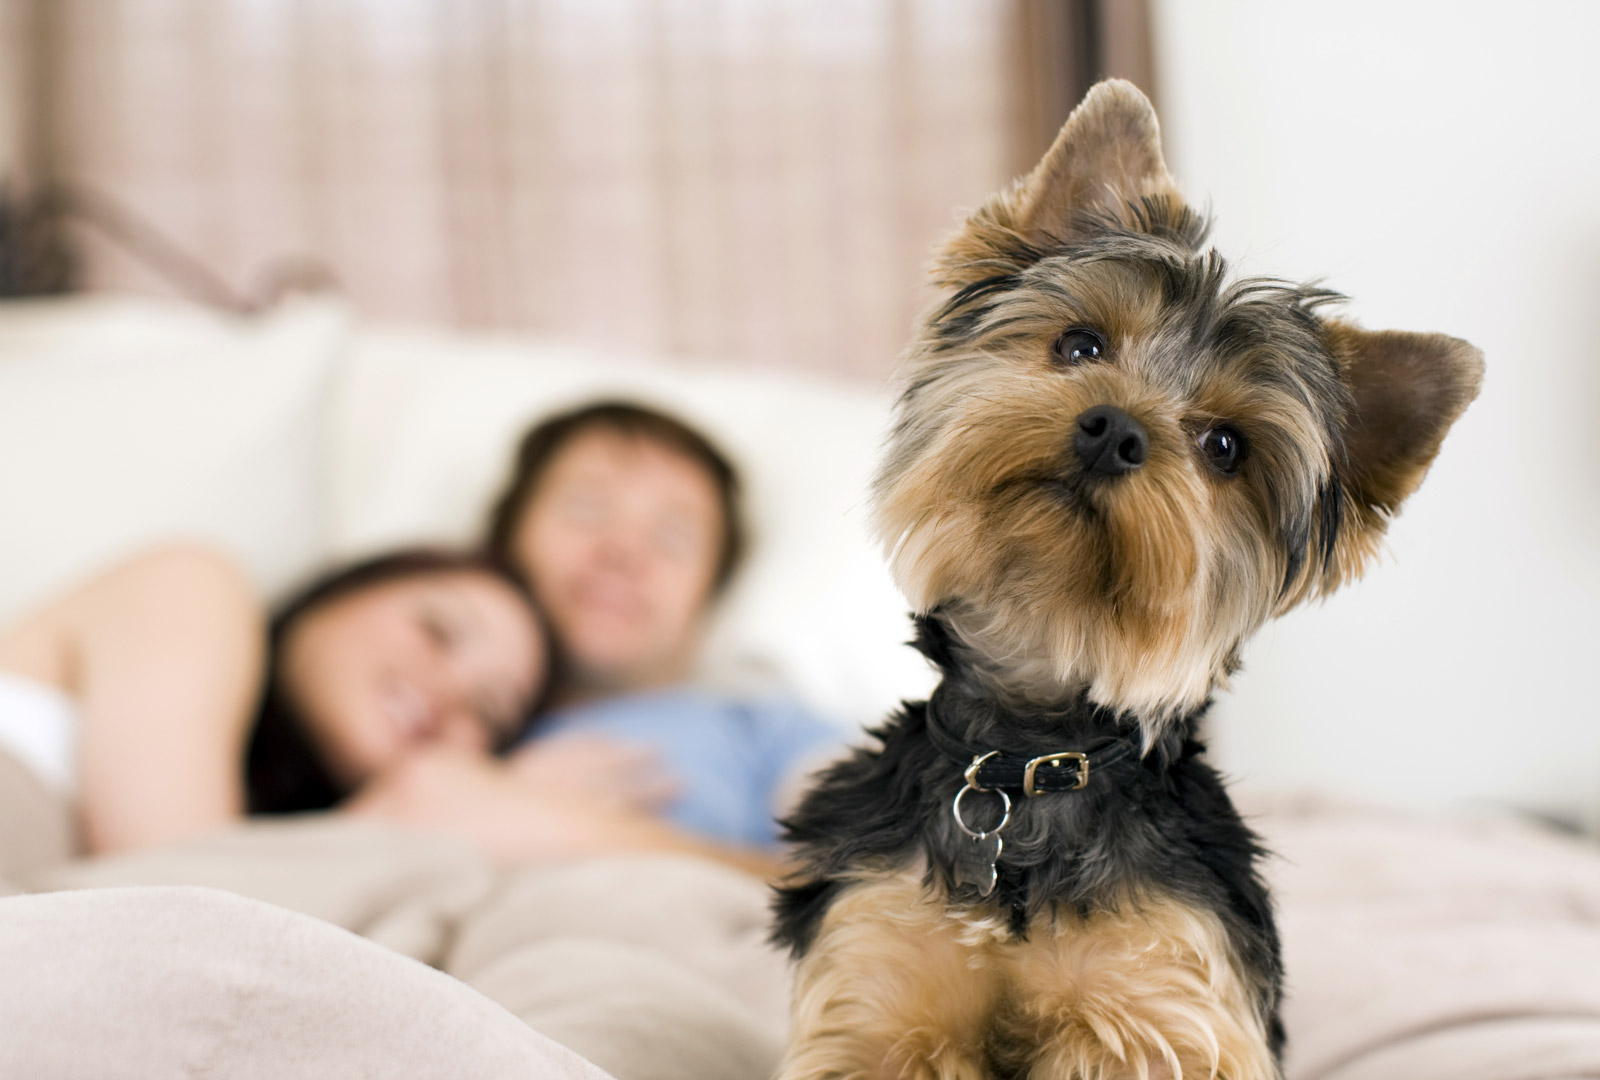 Some of the Weirdest Pet Insurance Claims in History